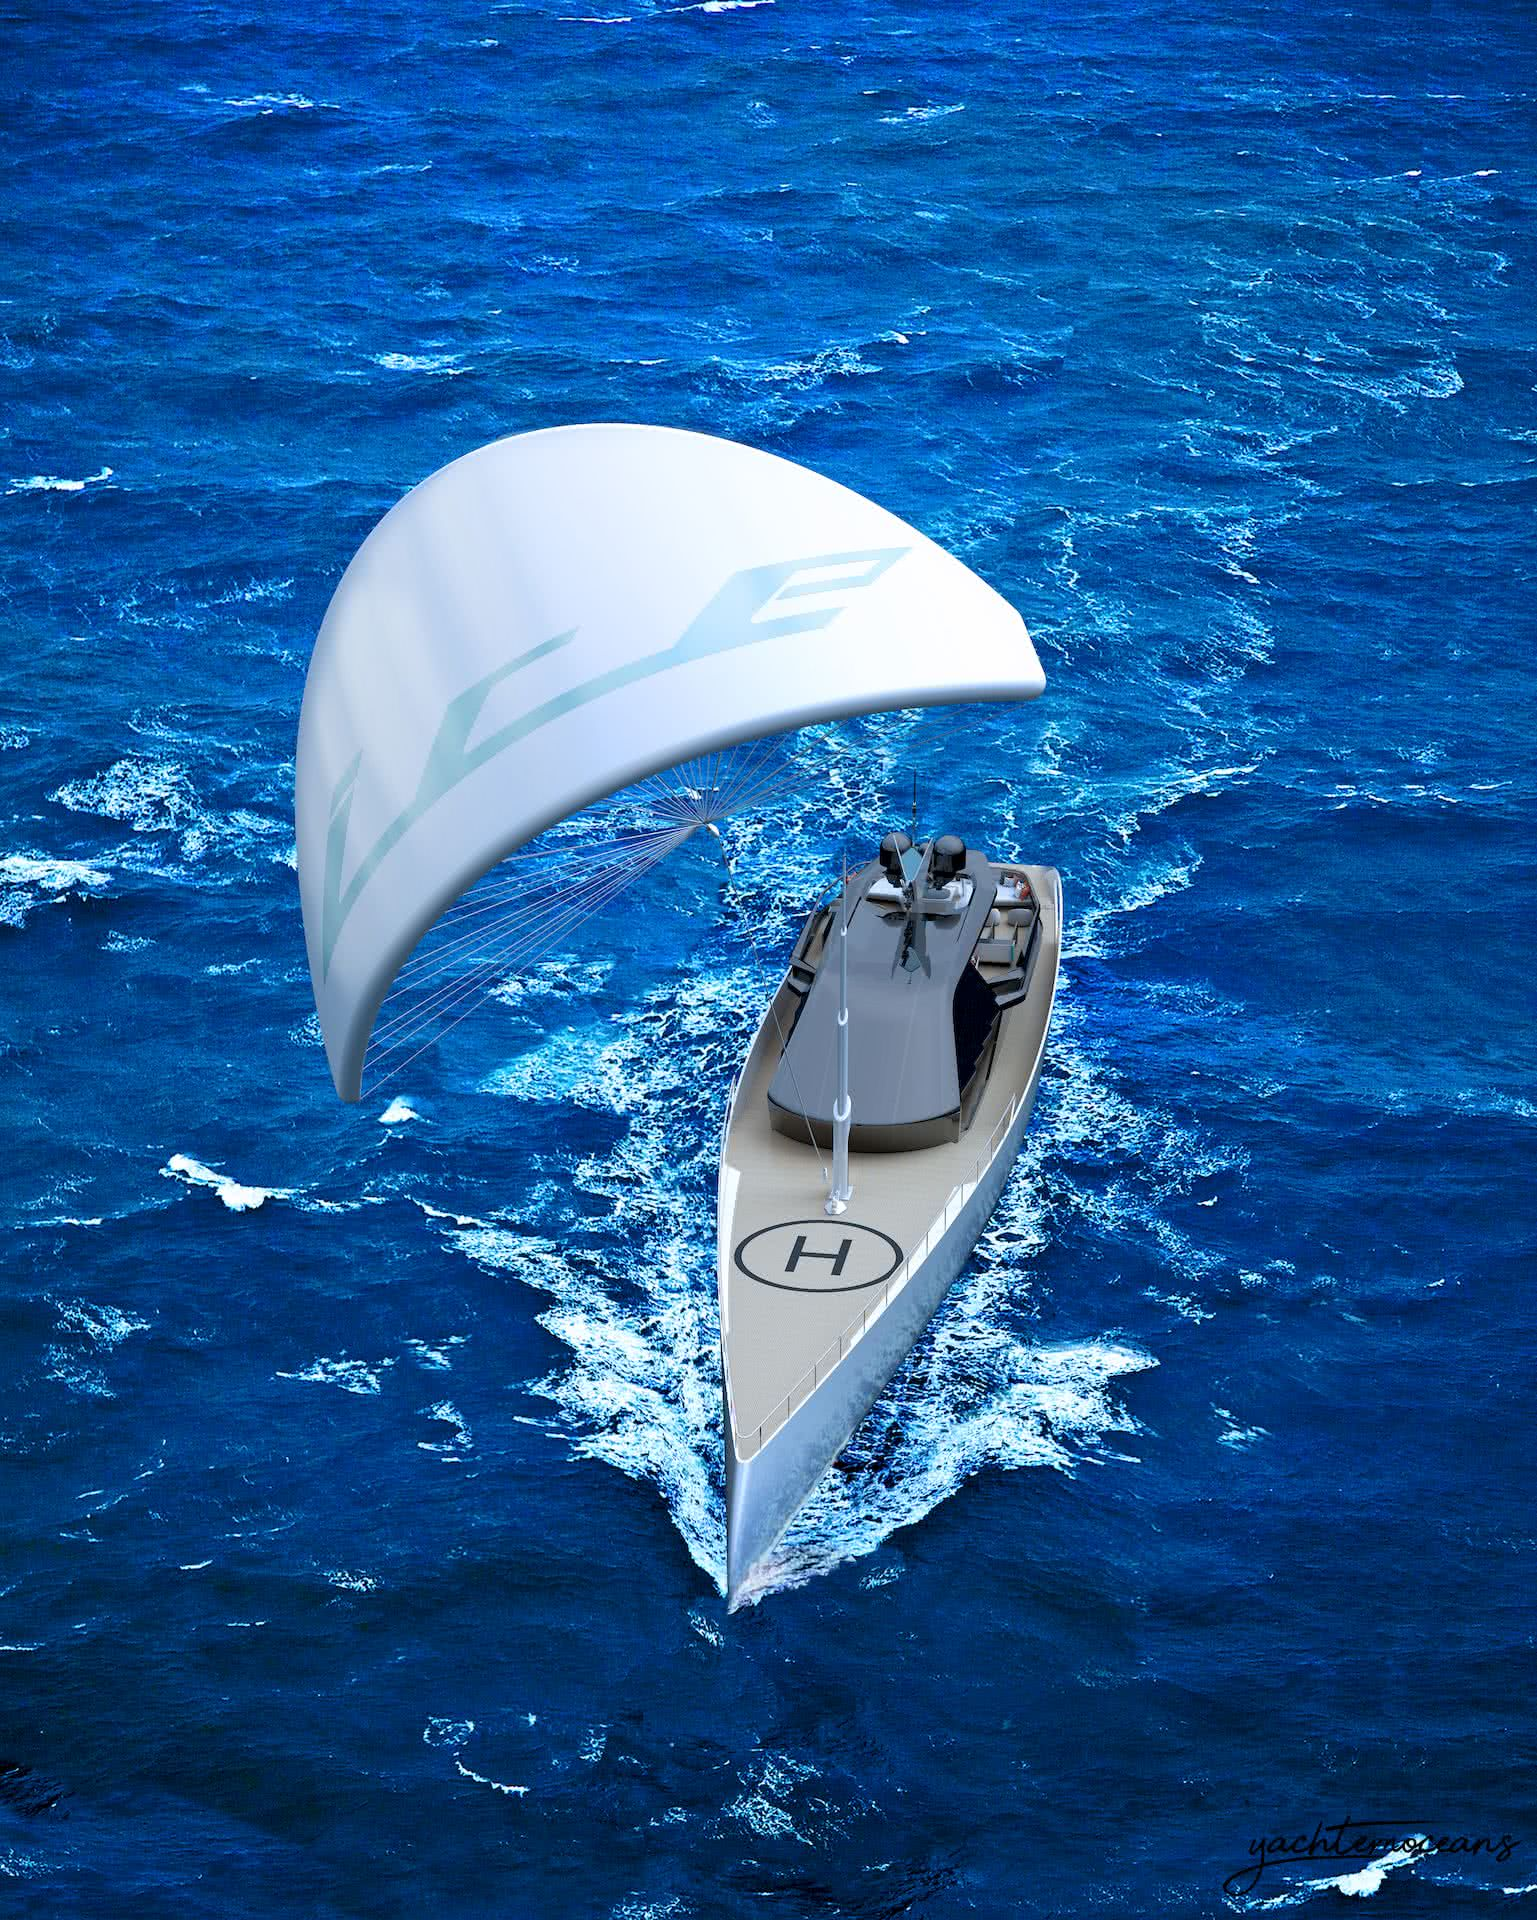 Ice Kite Yacht With Kite Propulsion And Support Vessel